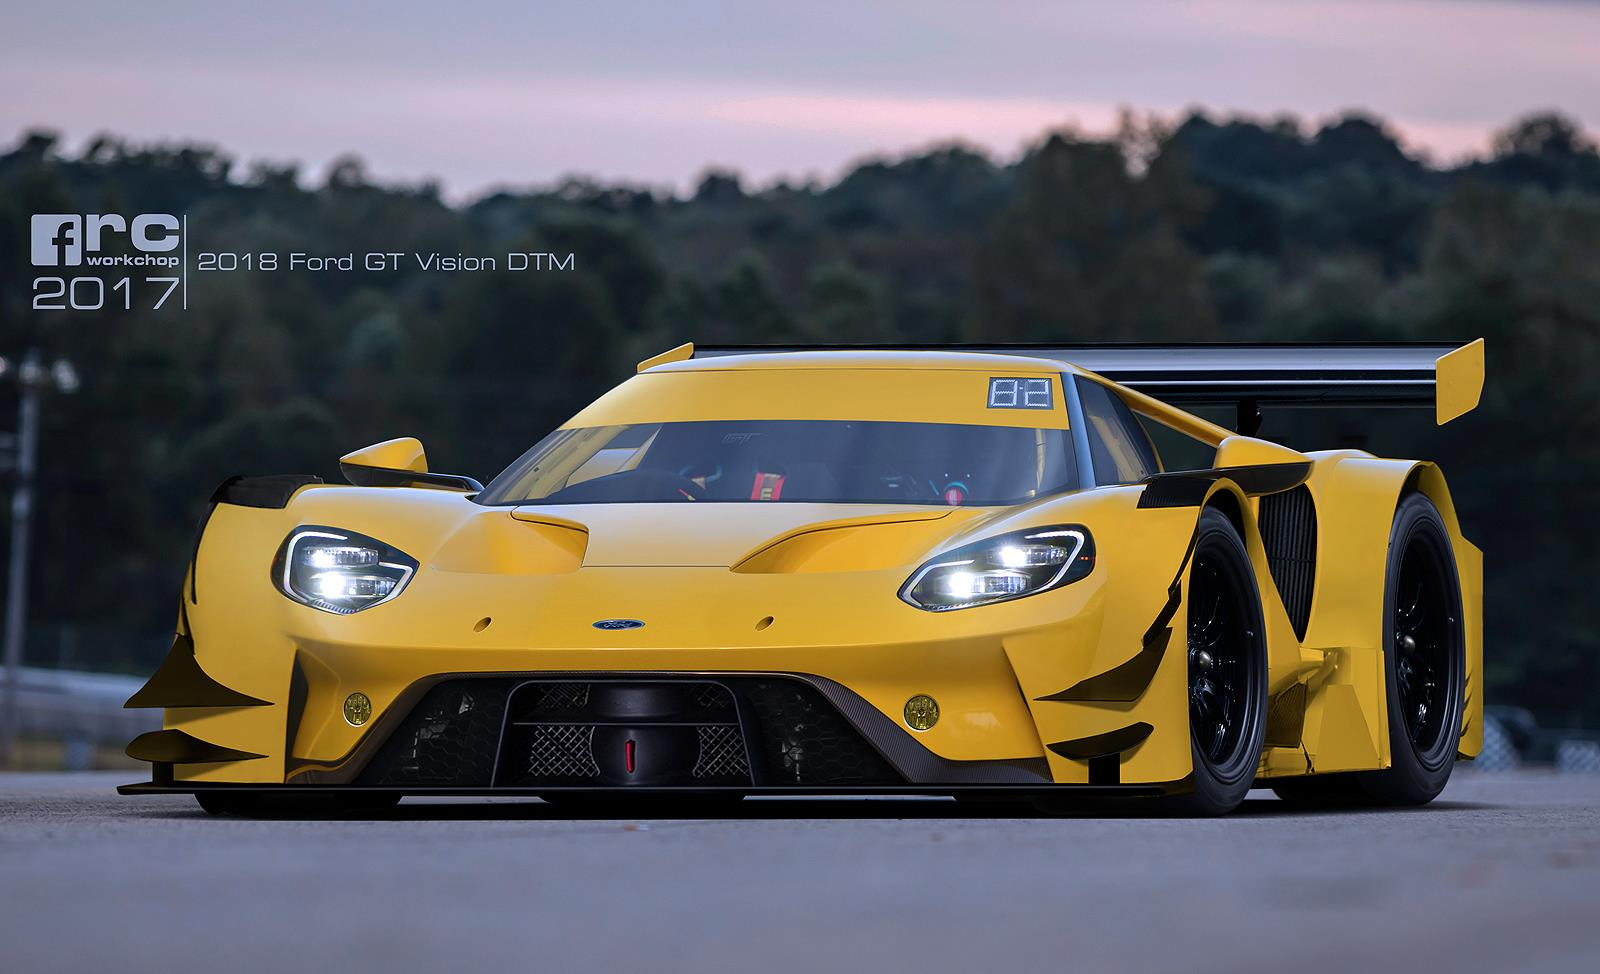 A Ford Gt For Dtm Racing We Approve Carscoops Com